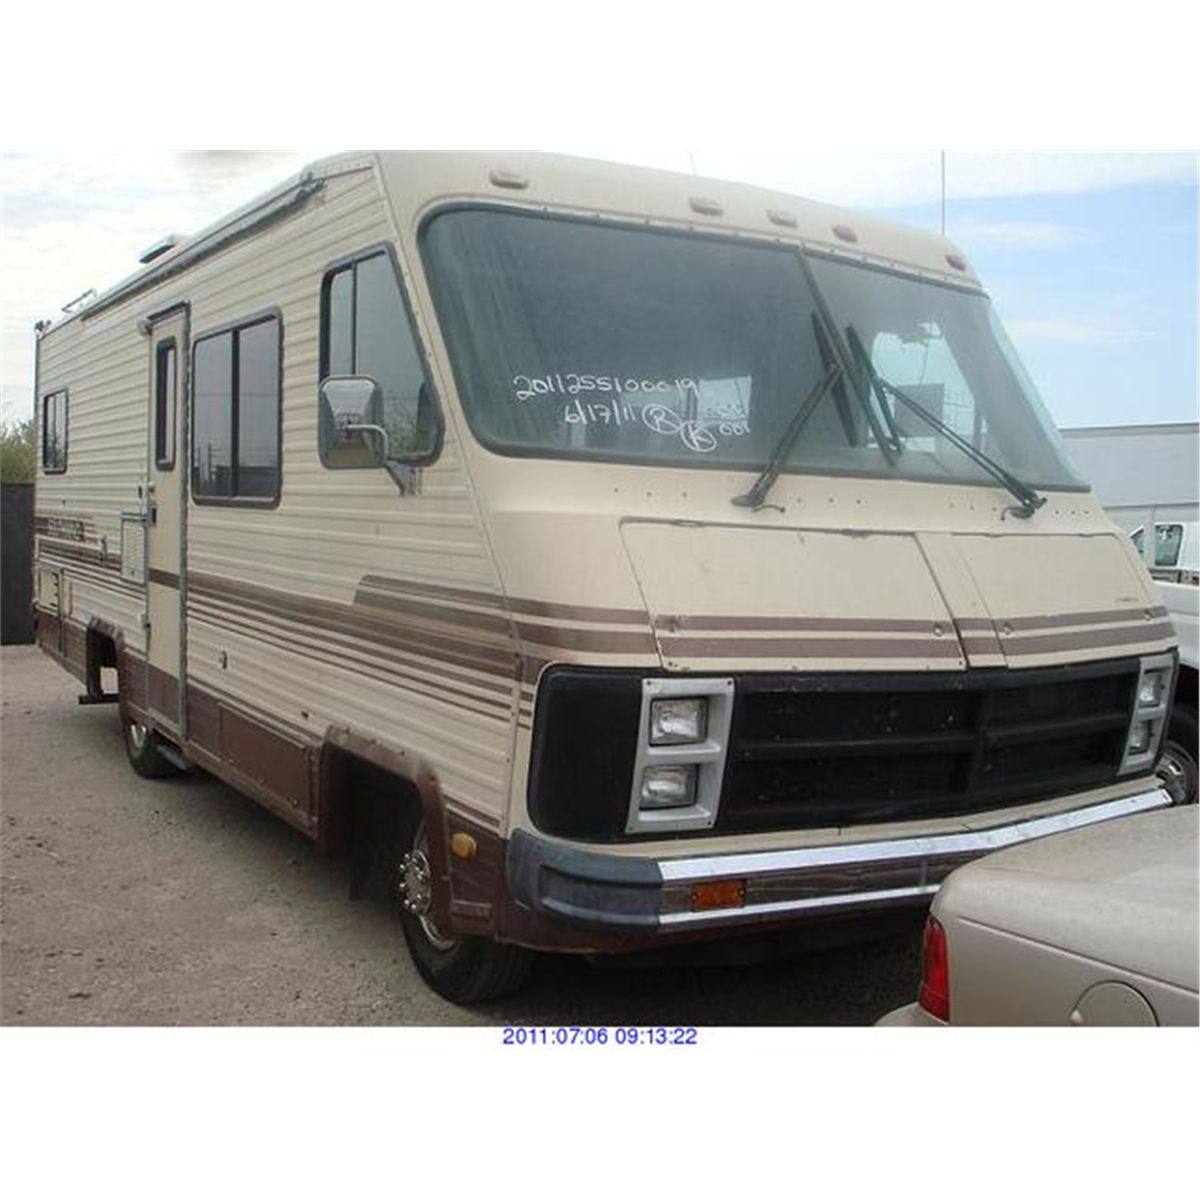 1985 Rv - Year of Clean Water